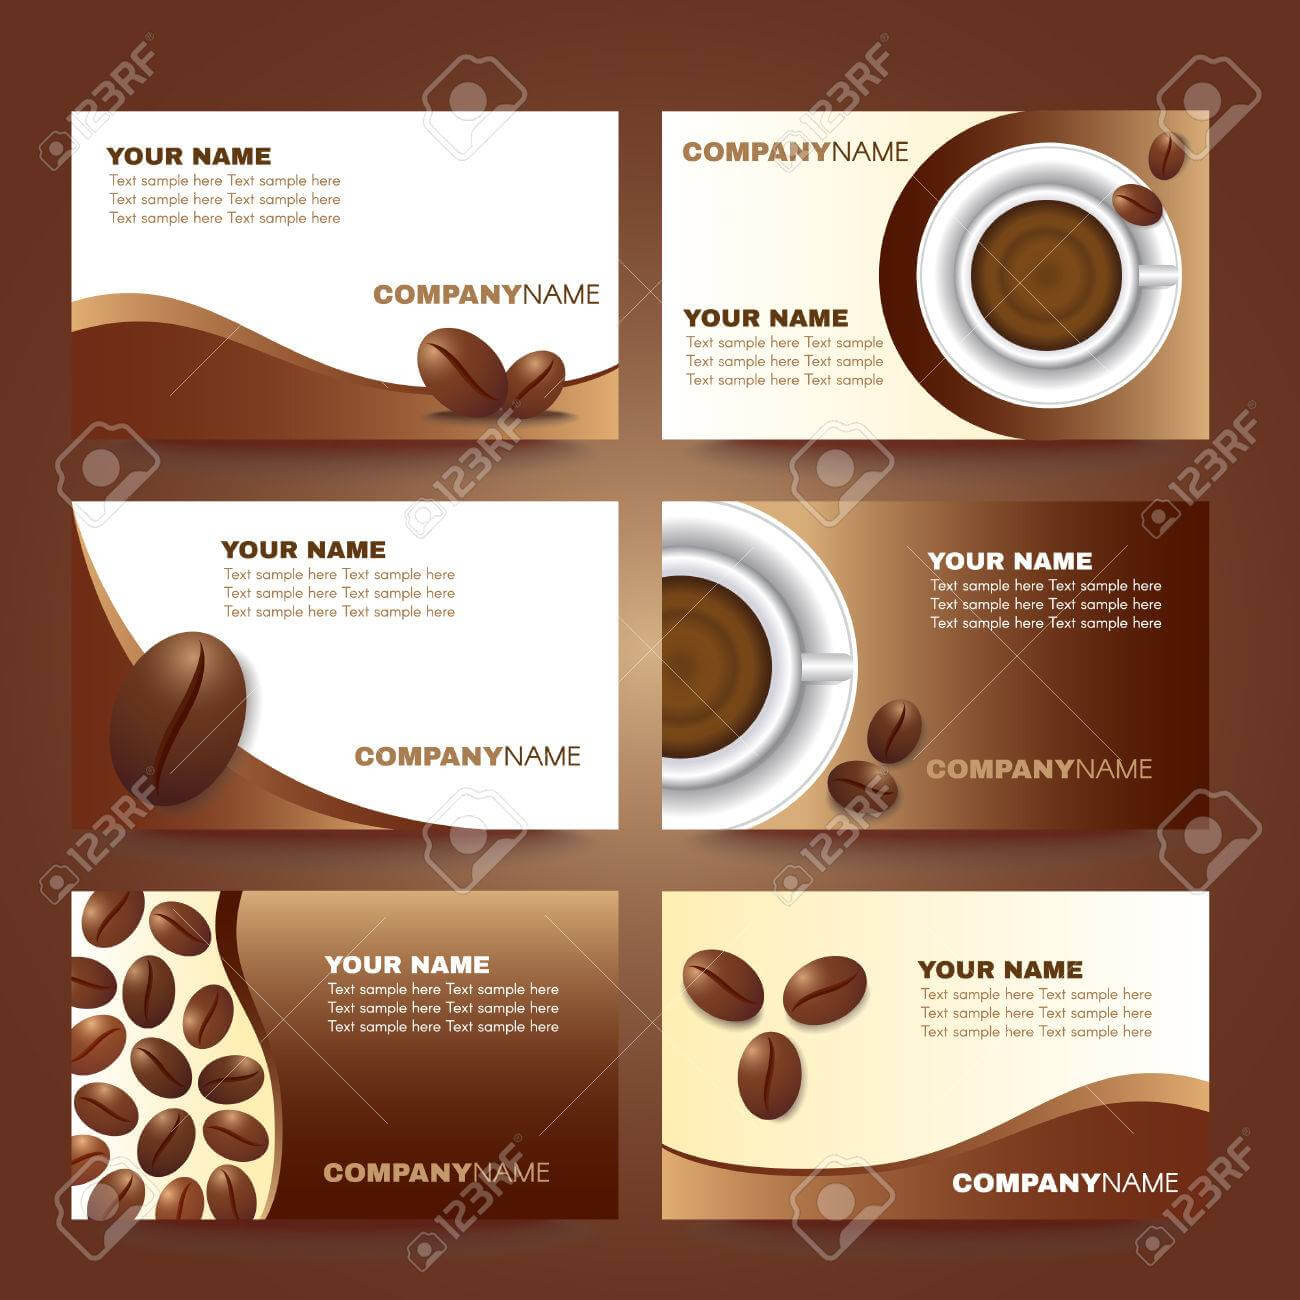 Coffee Business Card Template Vector Set Design With Regard To Coffee Business Card Template Free